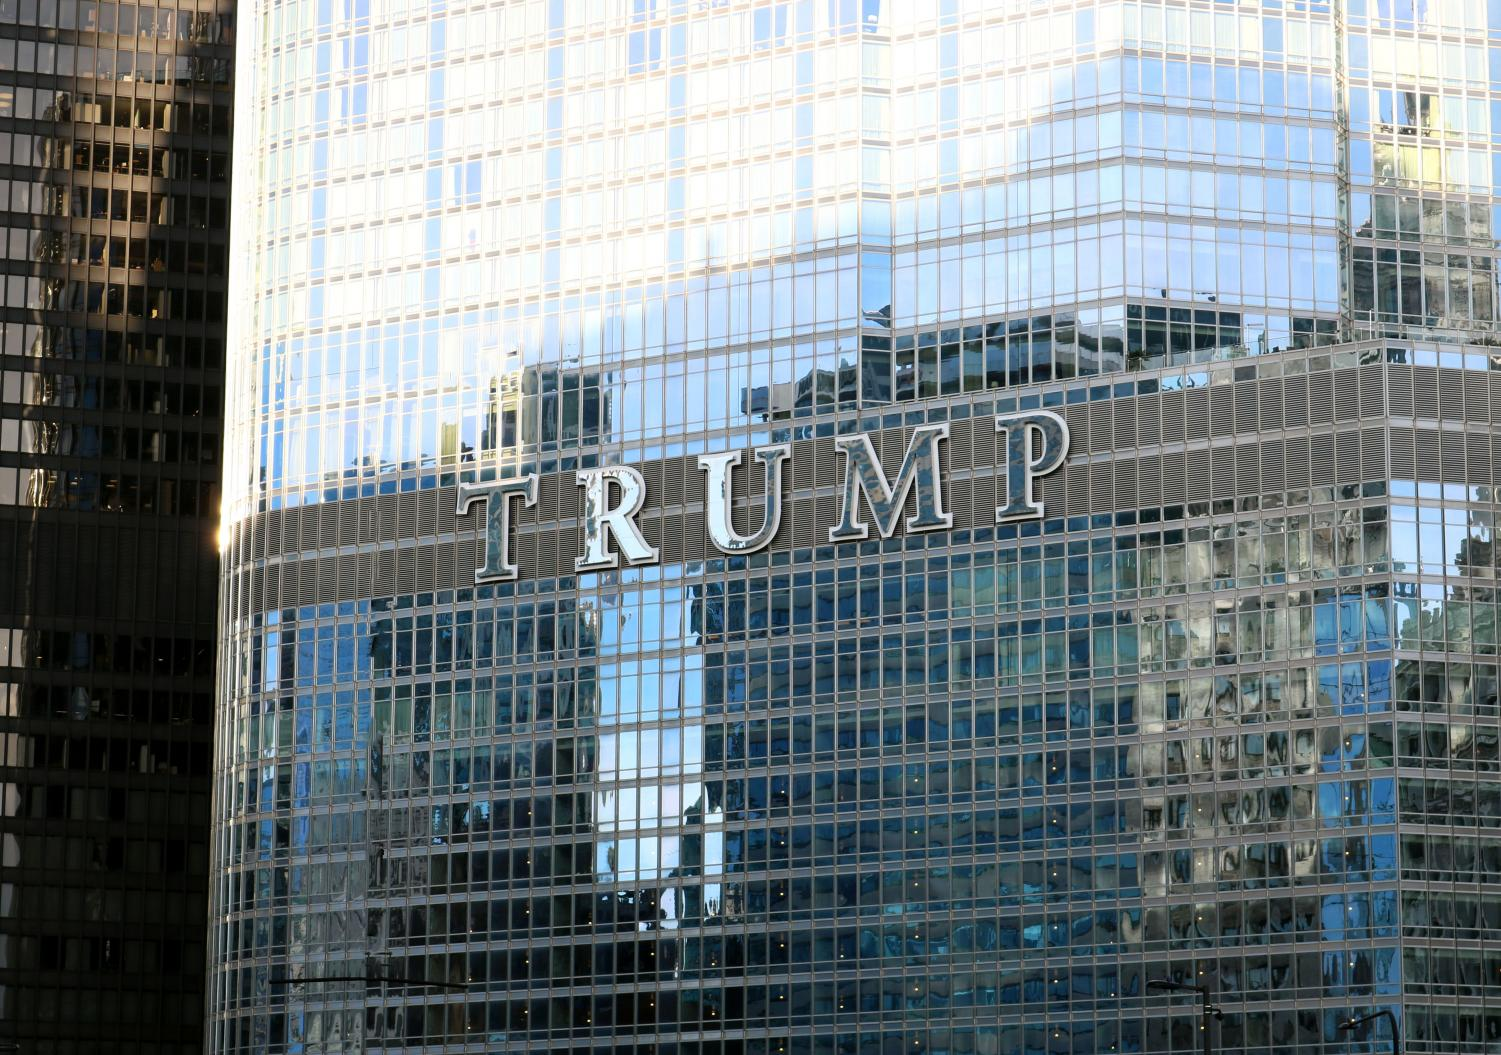 Trump tower hovers over Chicago's skyline, where the two students met.